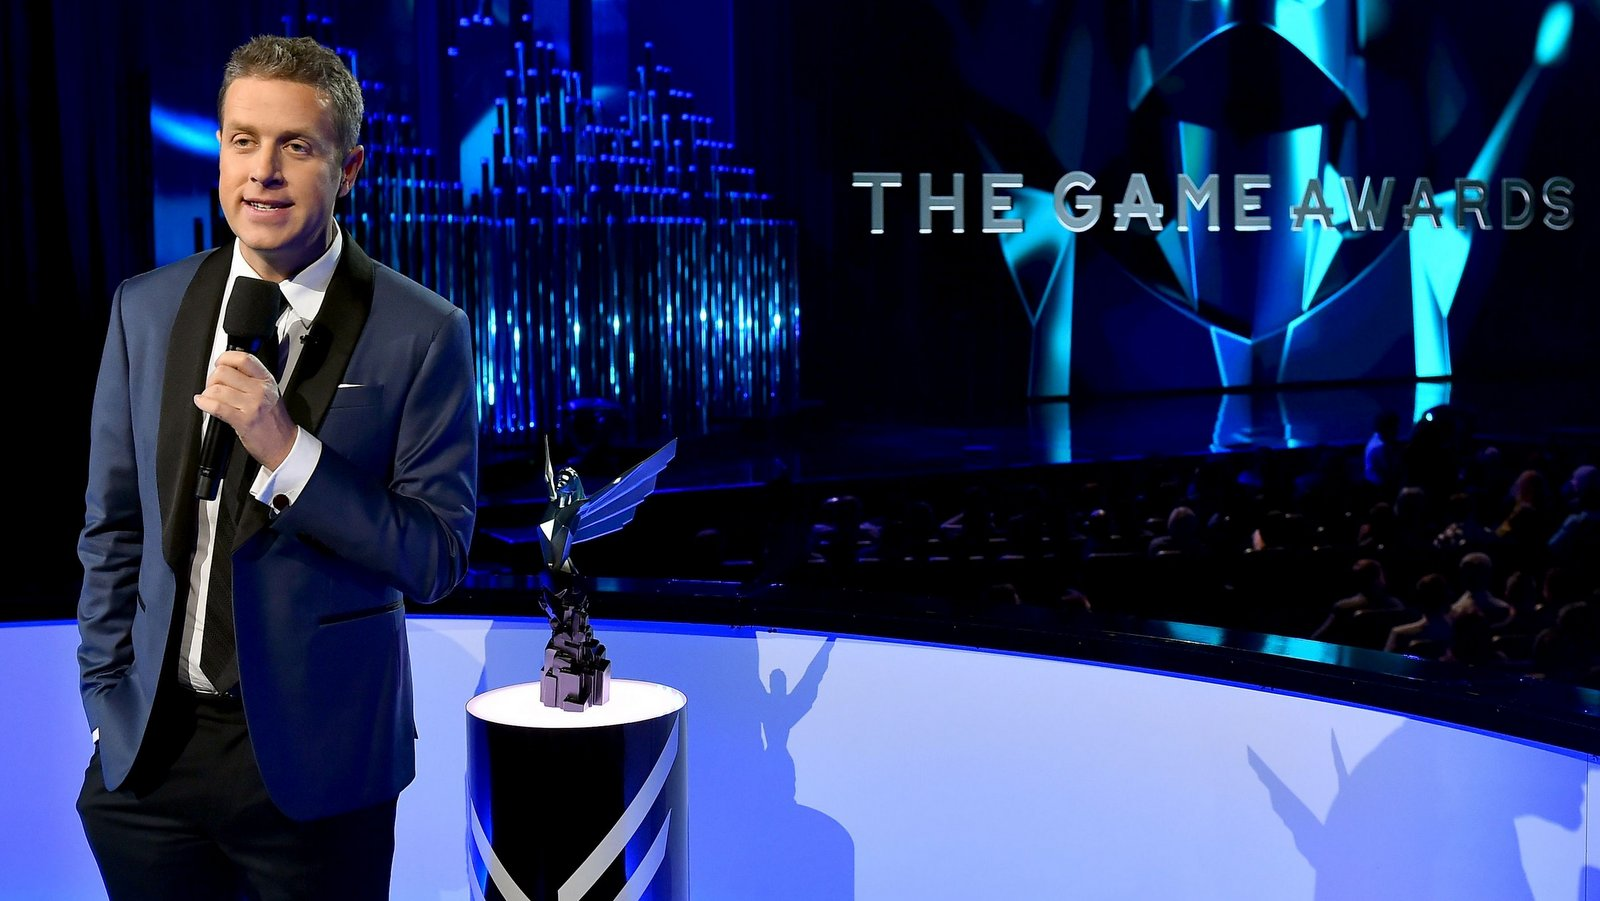 thumb-the-game-awards-2018-best-announcements.jpg